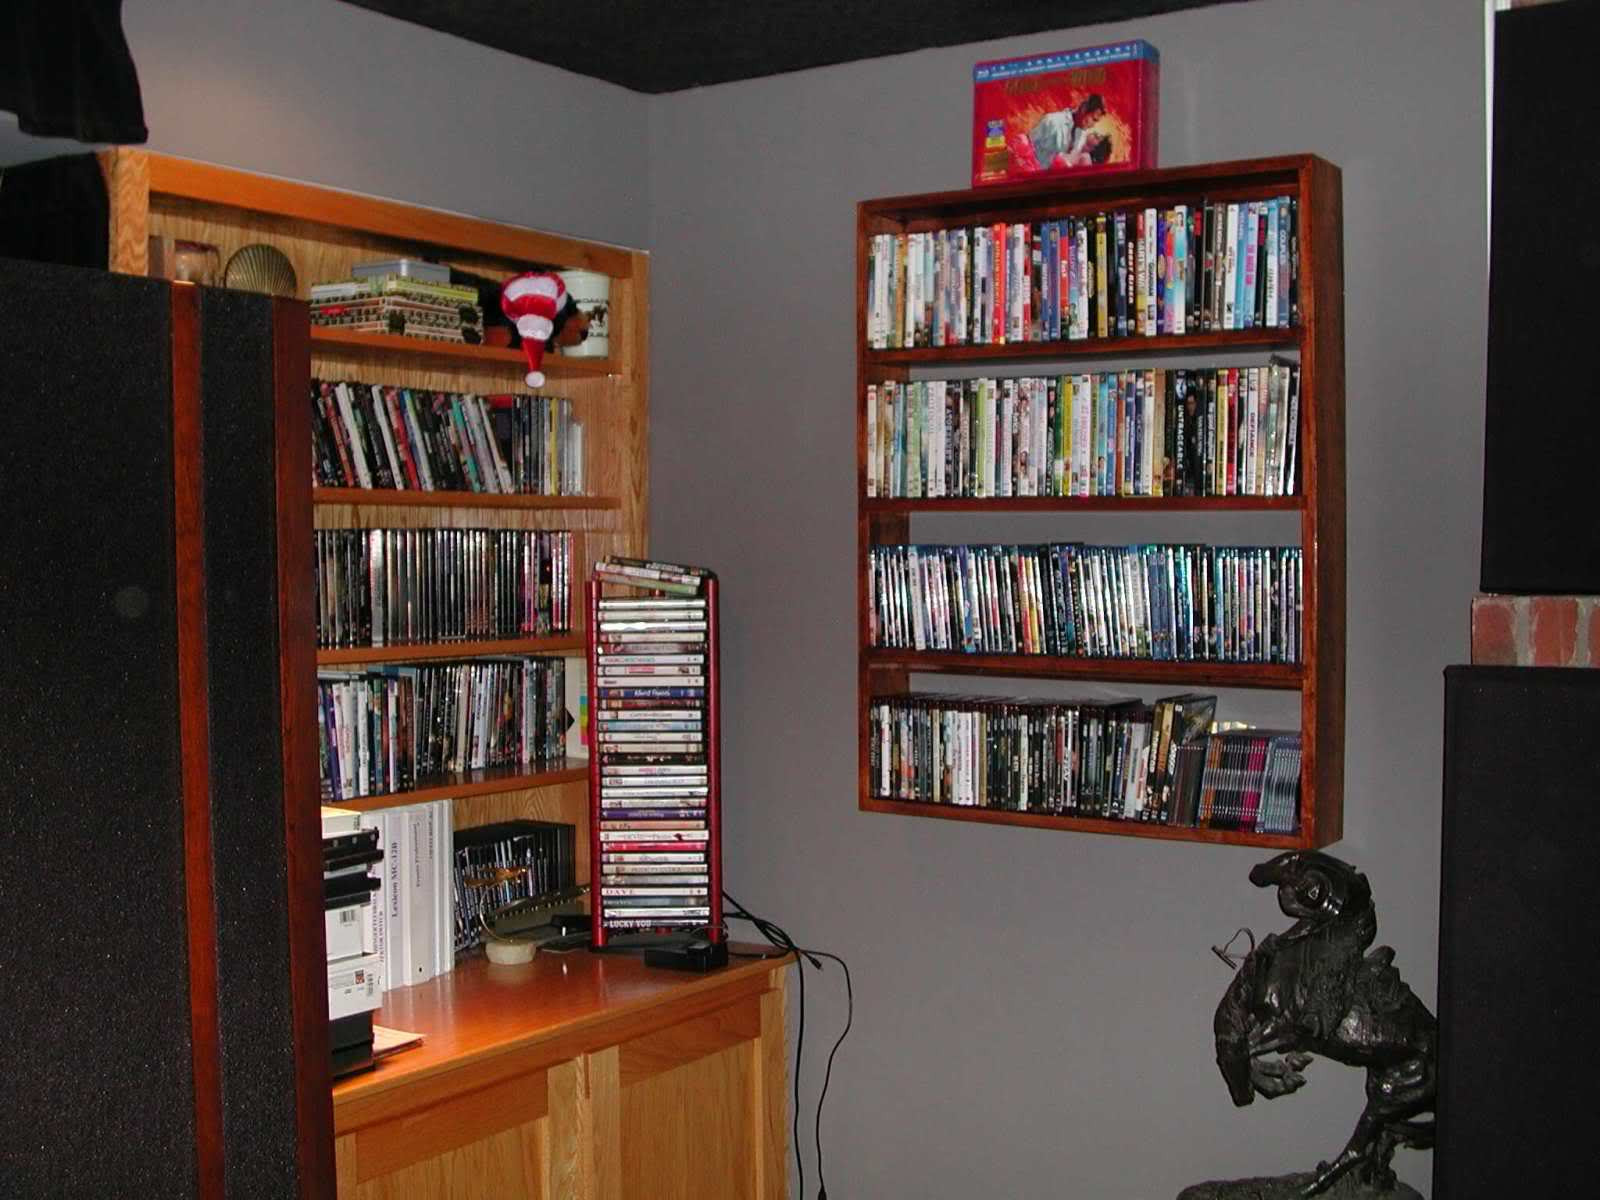 Best ideas about DIY Dvd Rack . Save or Pin DIY DVD rack Simplicity AVS Forum Now.